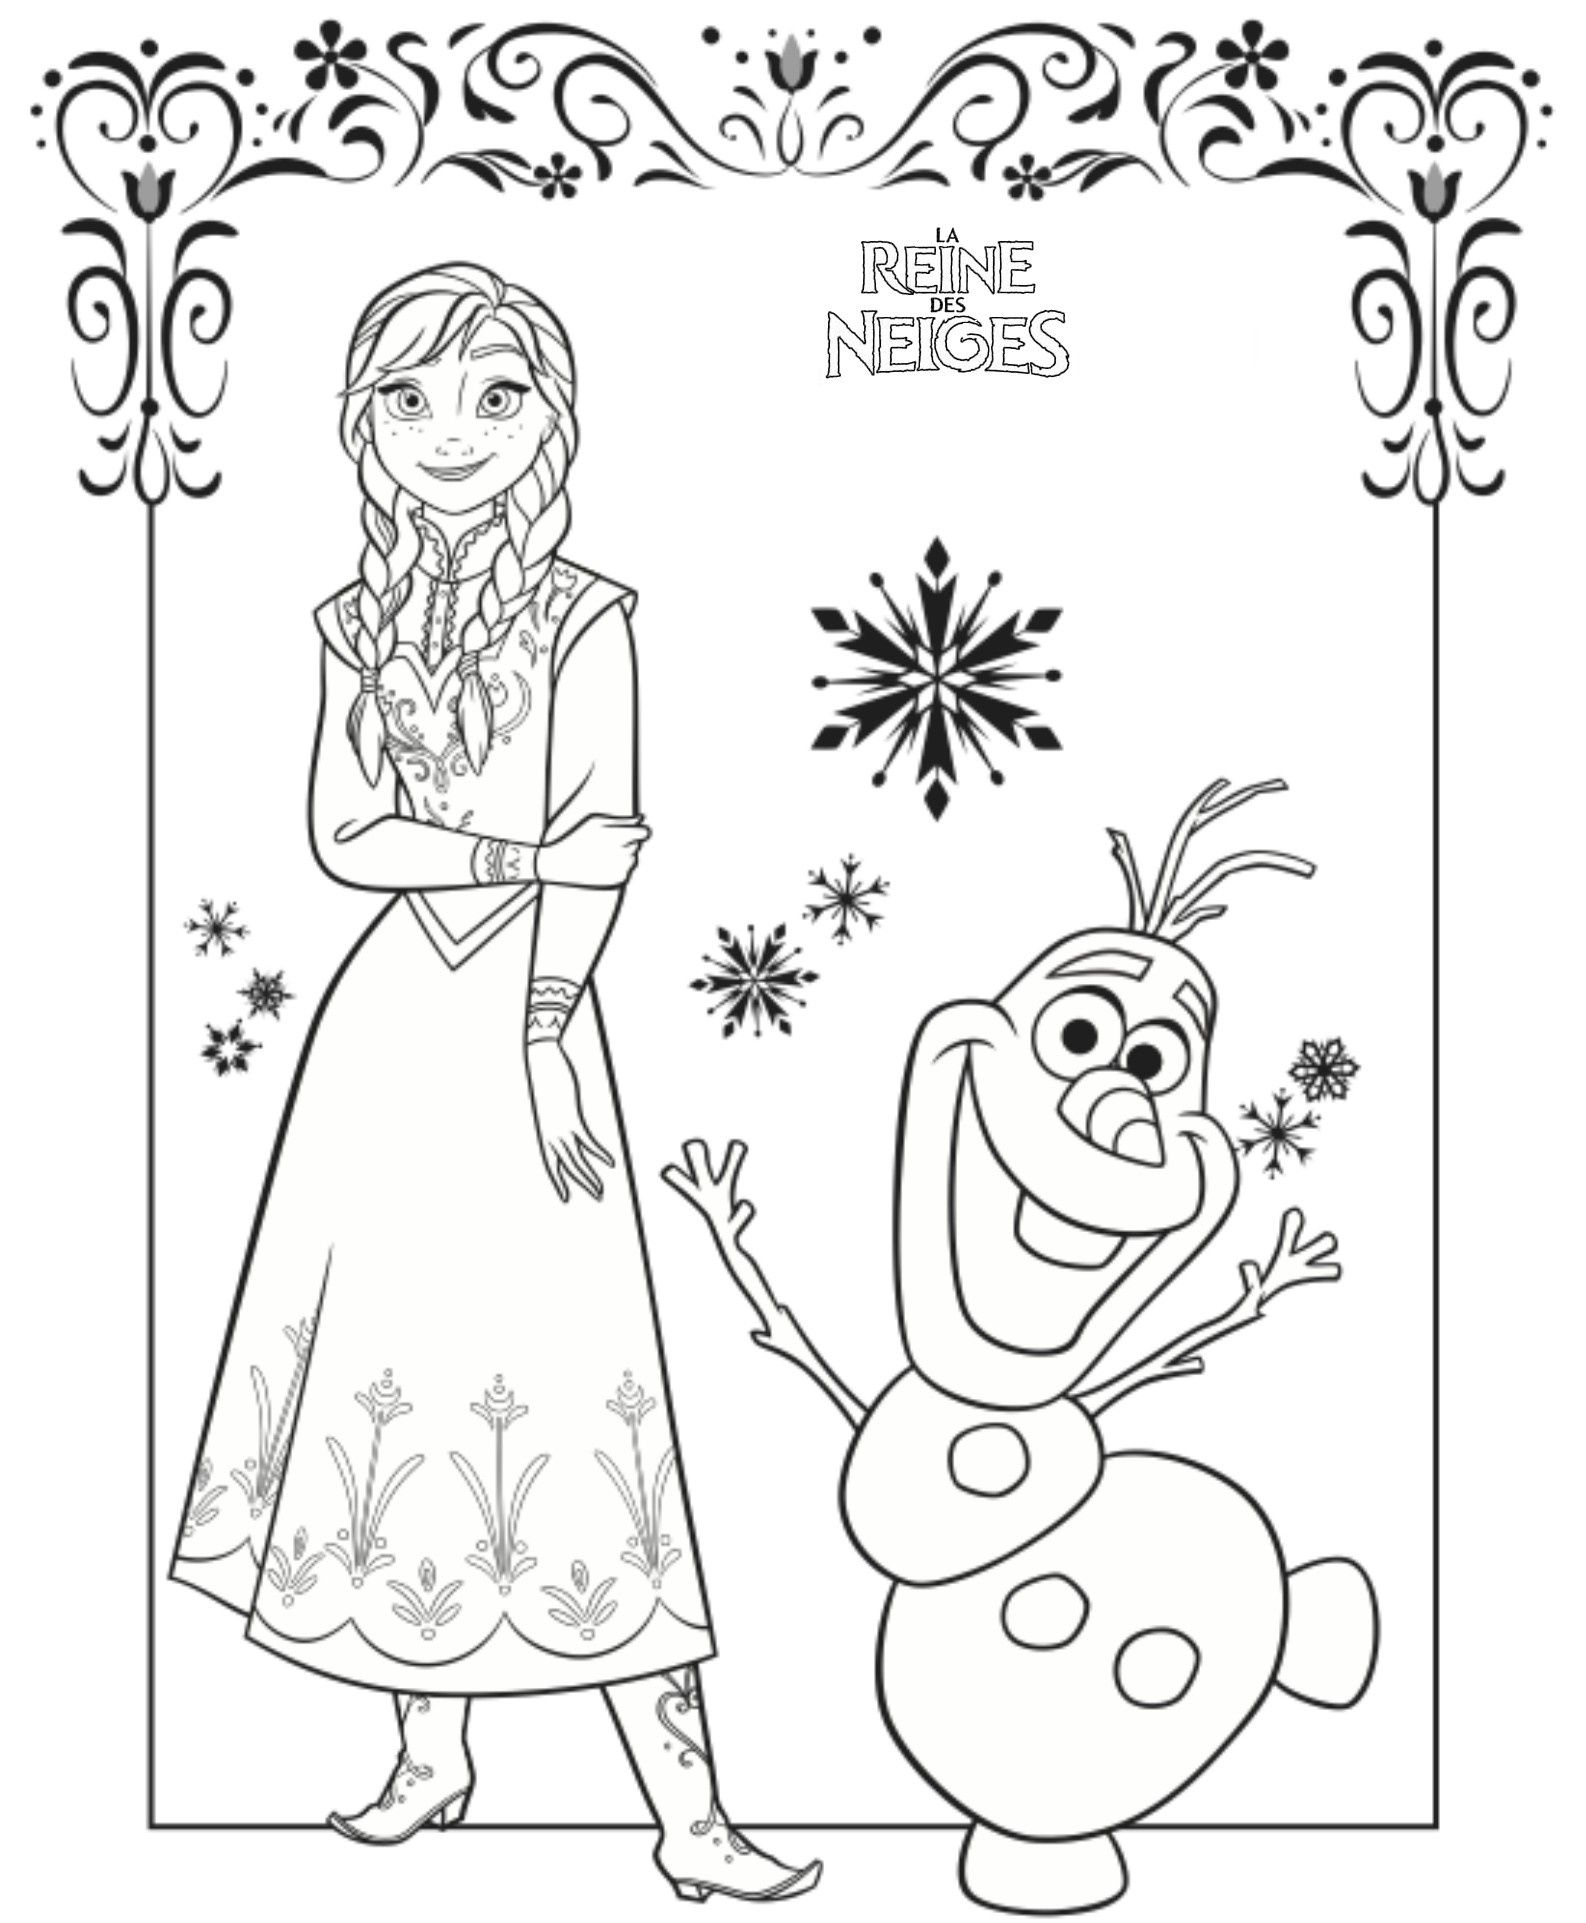 Coloriage Reine Des Neiges En Ligne : coloriage, reine, neiges, ligne, Simple, Coloriage, Reine, Neiges, Gratuit, Pictures, Coloring, Pages,, Frozen, Coloring,, Disney, Pages